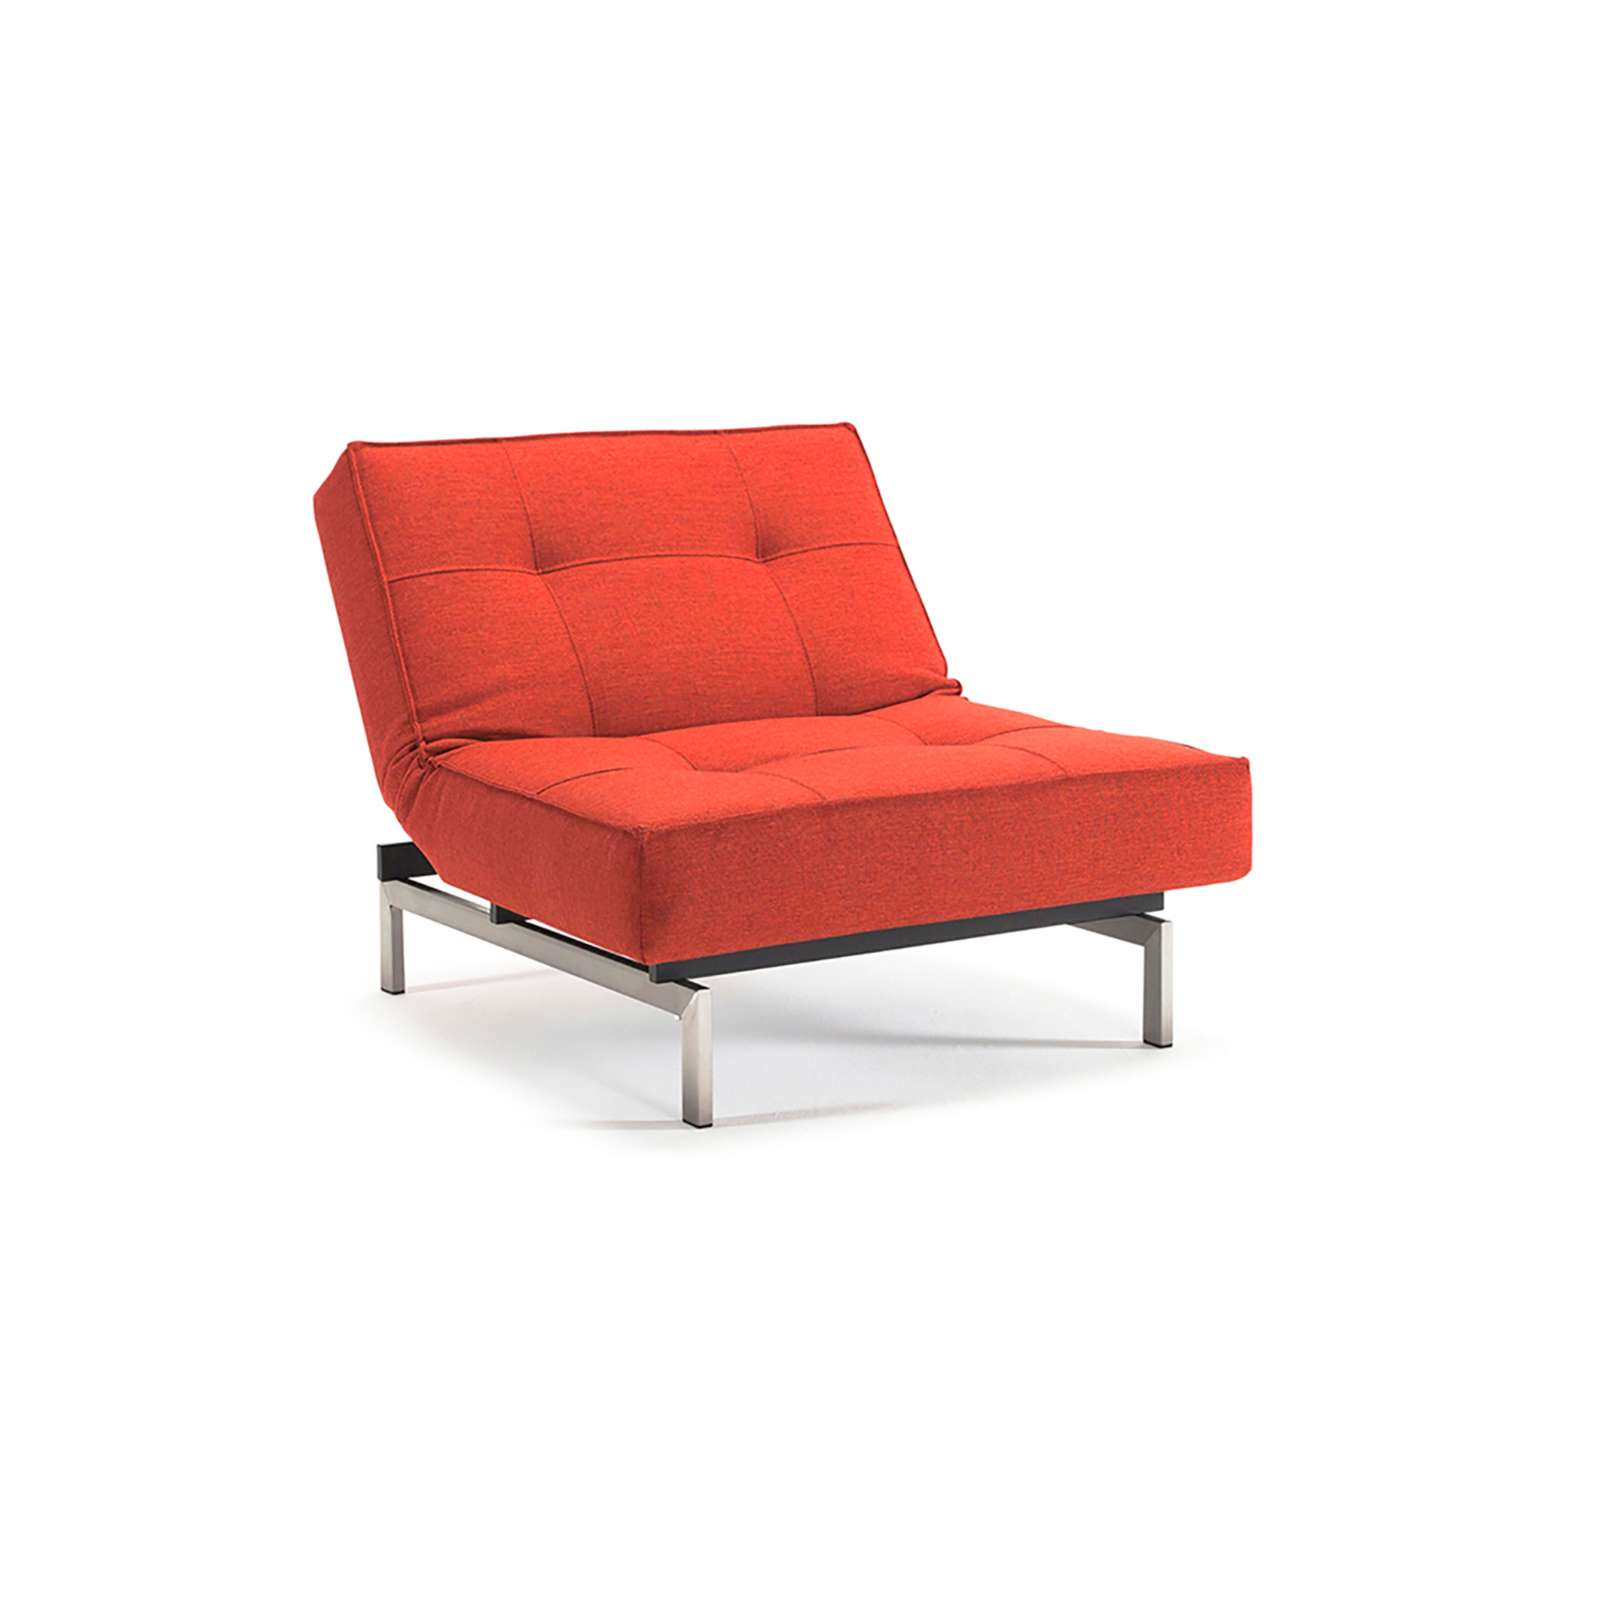 Picture for Splitback Lounge Chair by Innovation-USA